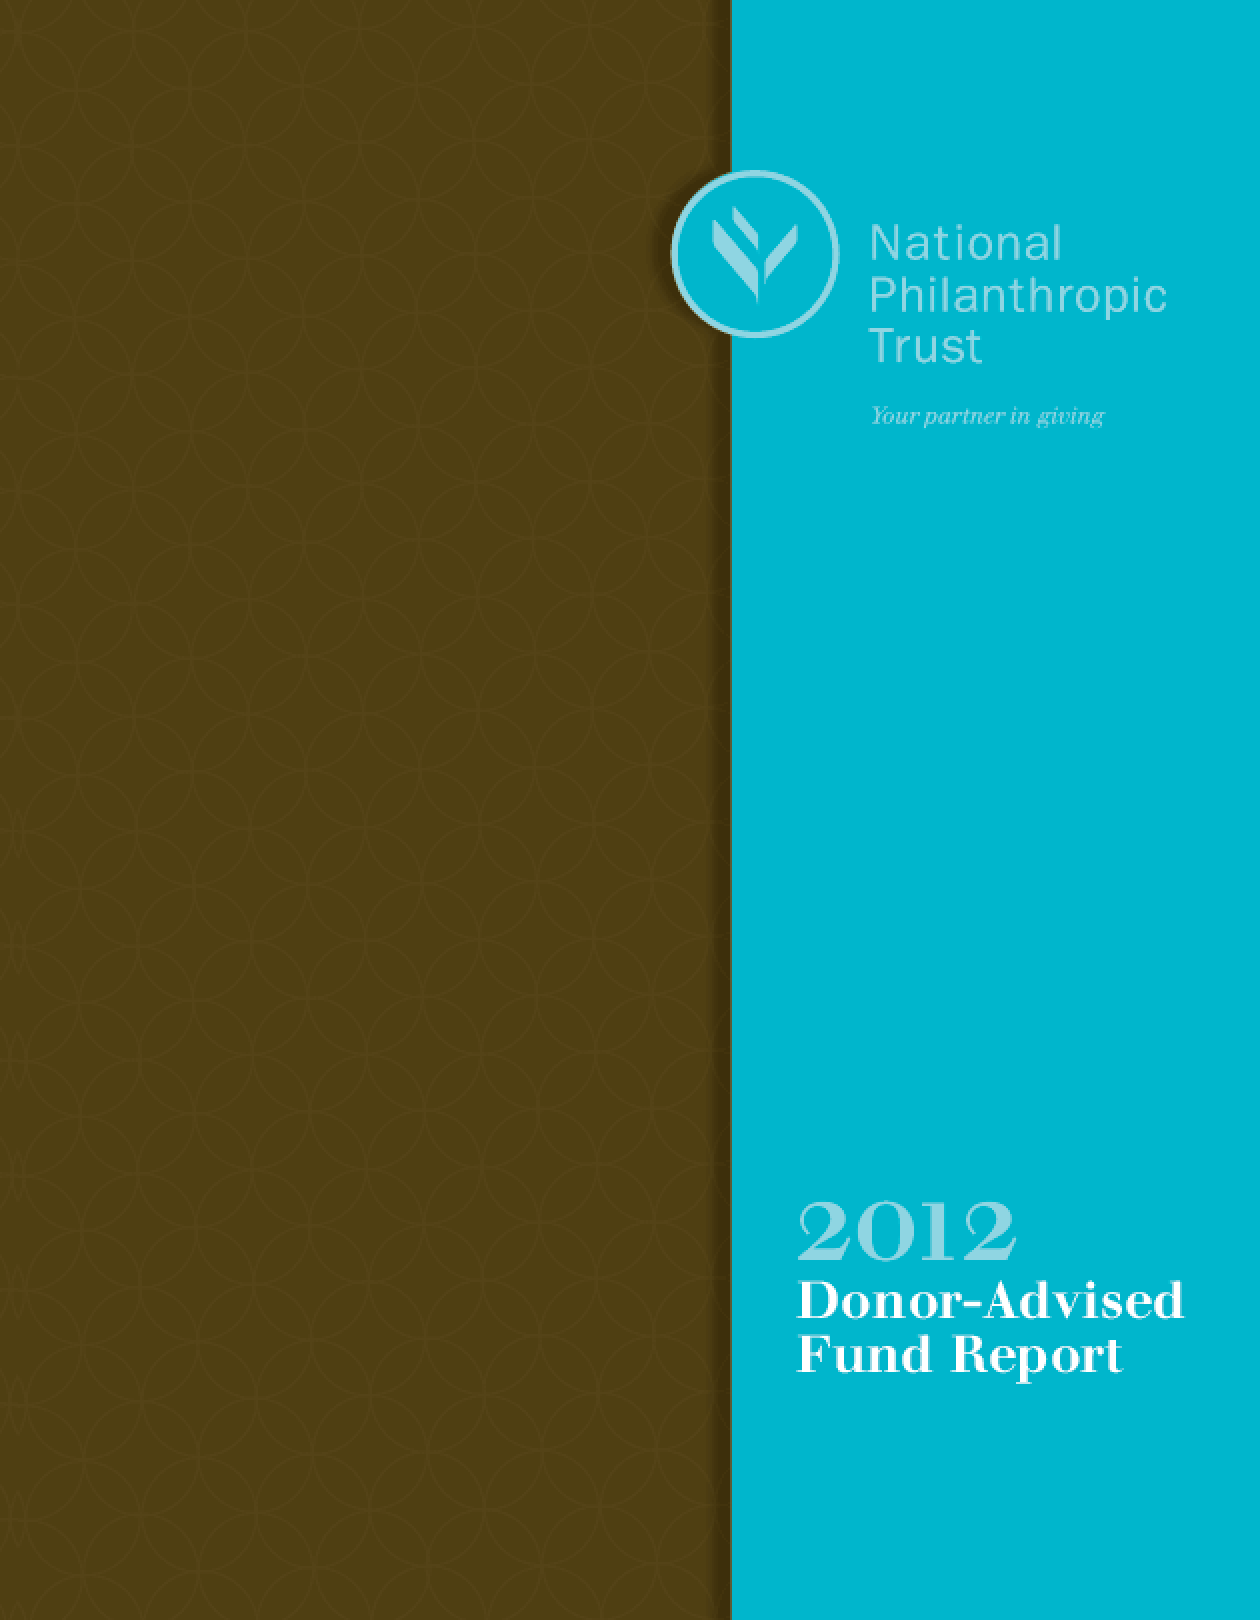 Donor-Advised Fund Report 2012